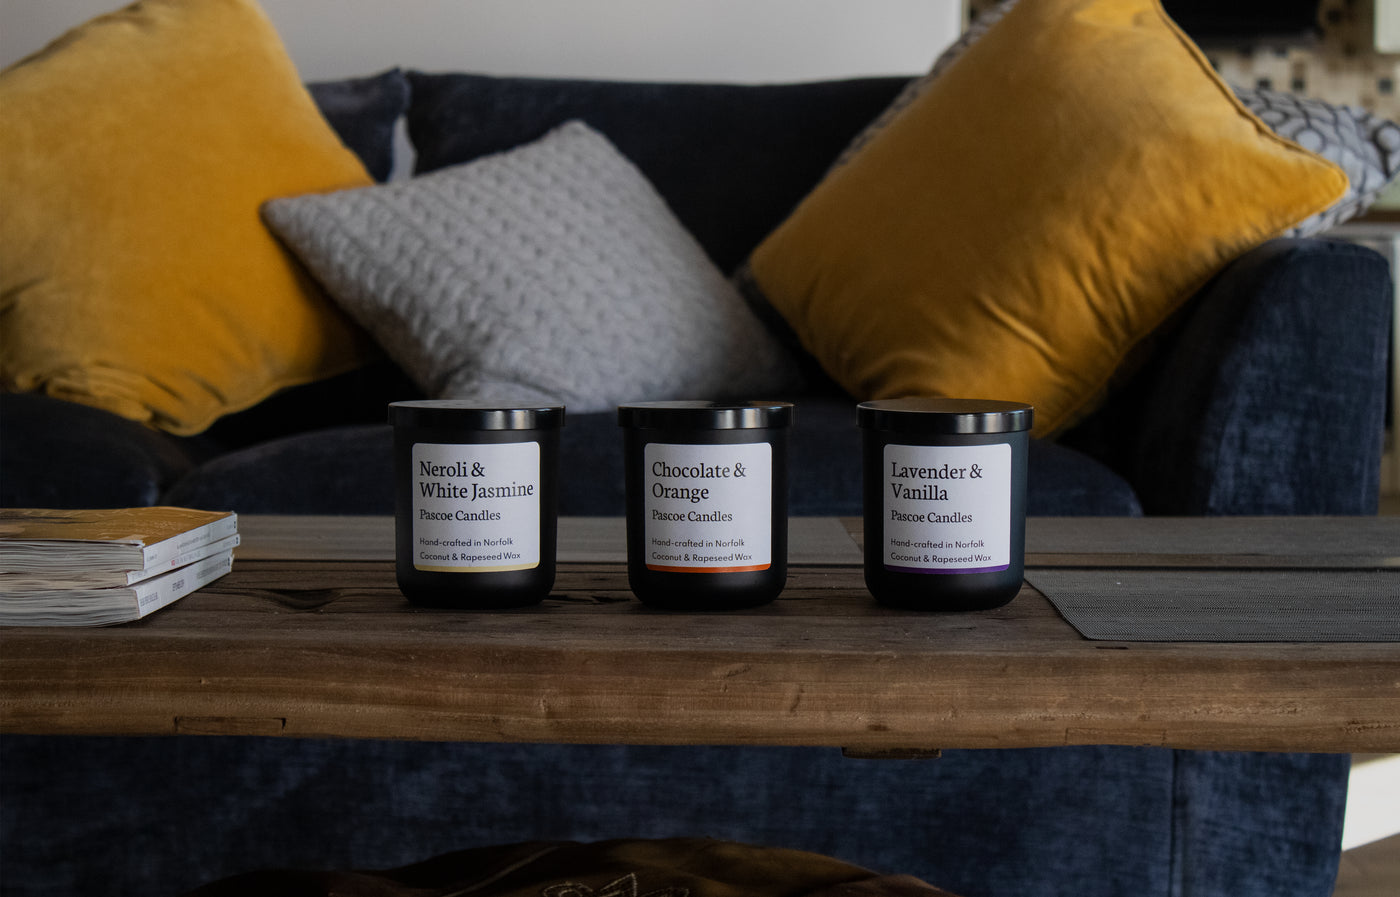 Pascoe Candles Handcrafted Vegan Luxury Candles on Wooden Table in Living Room